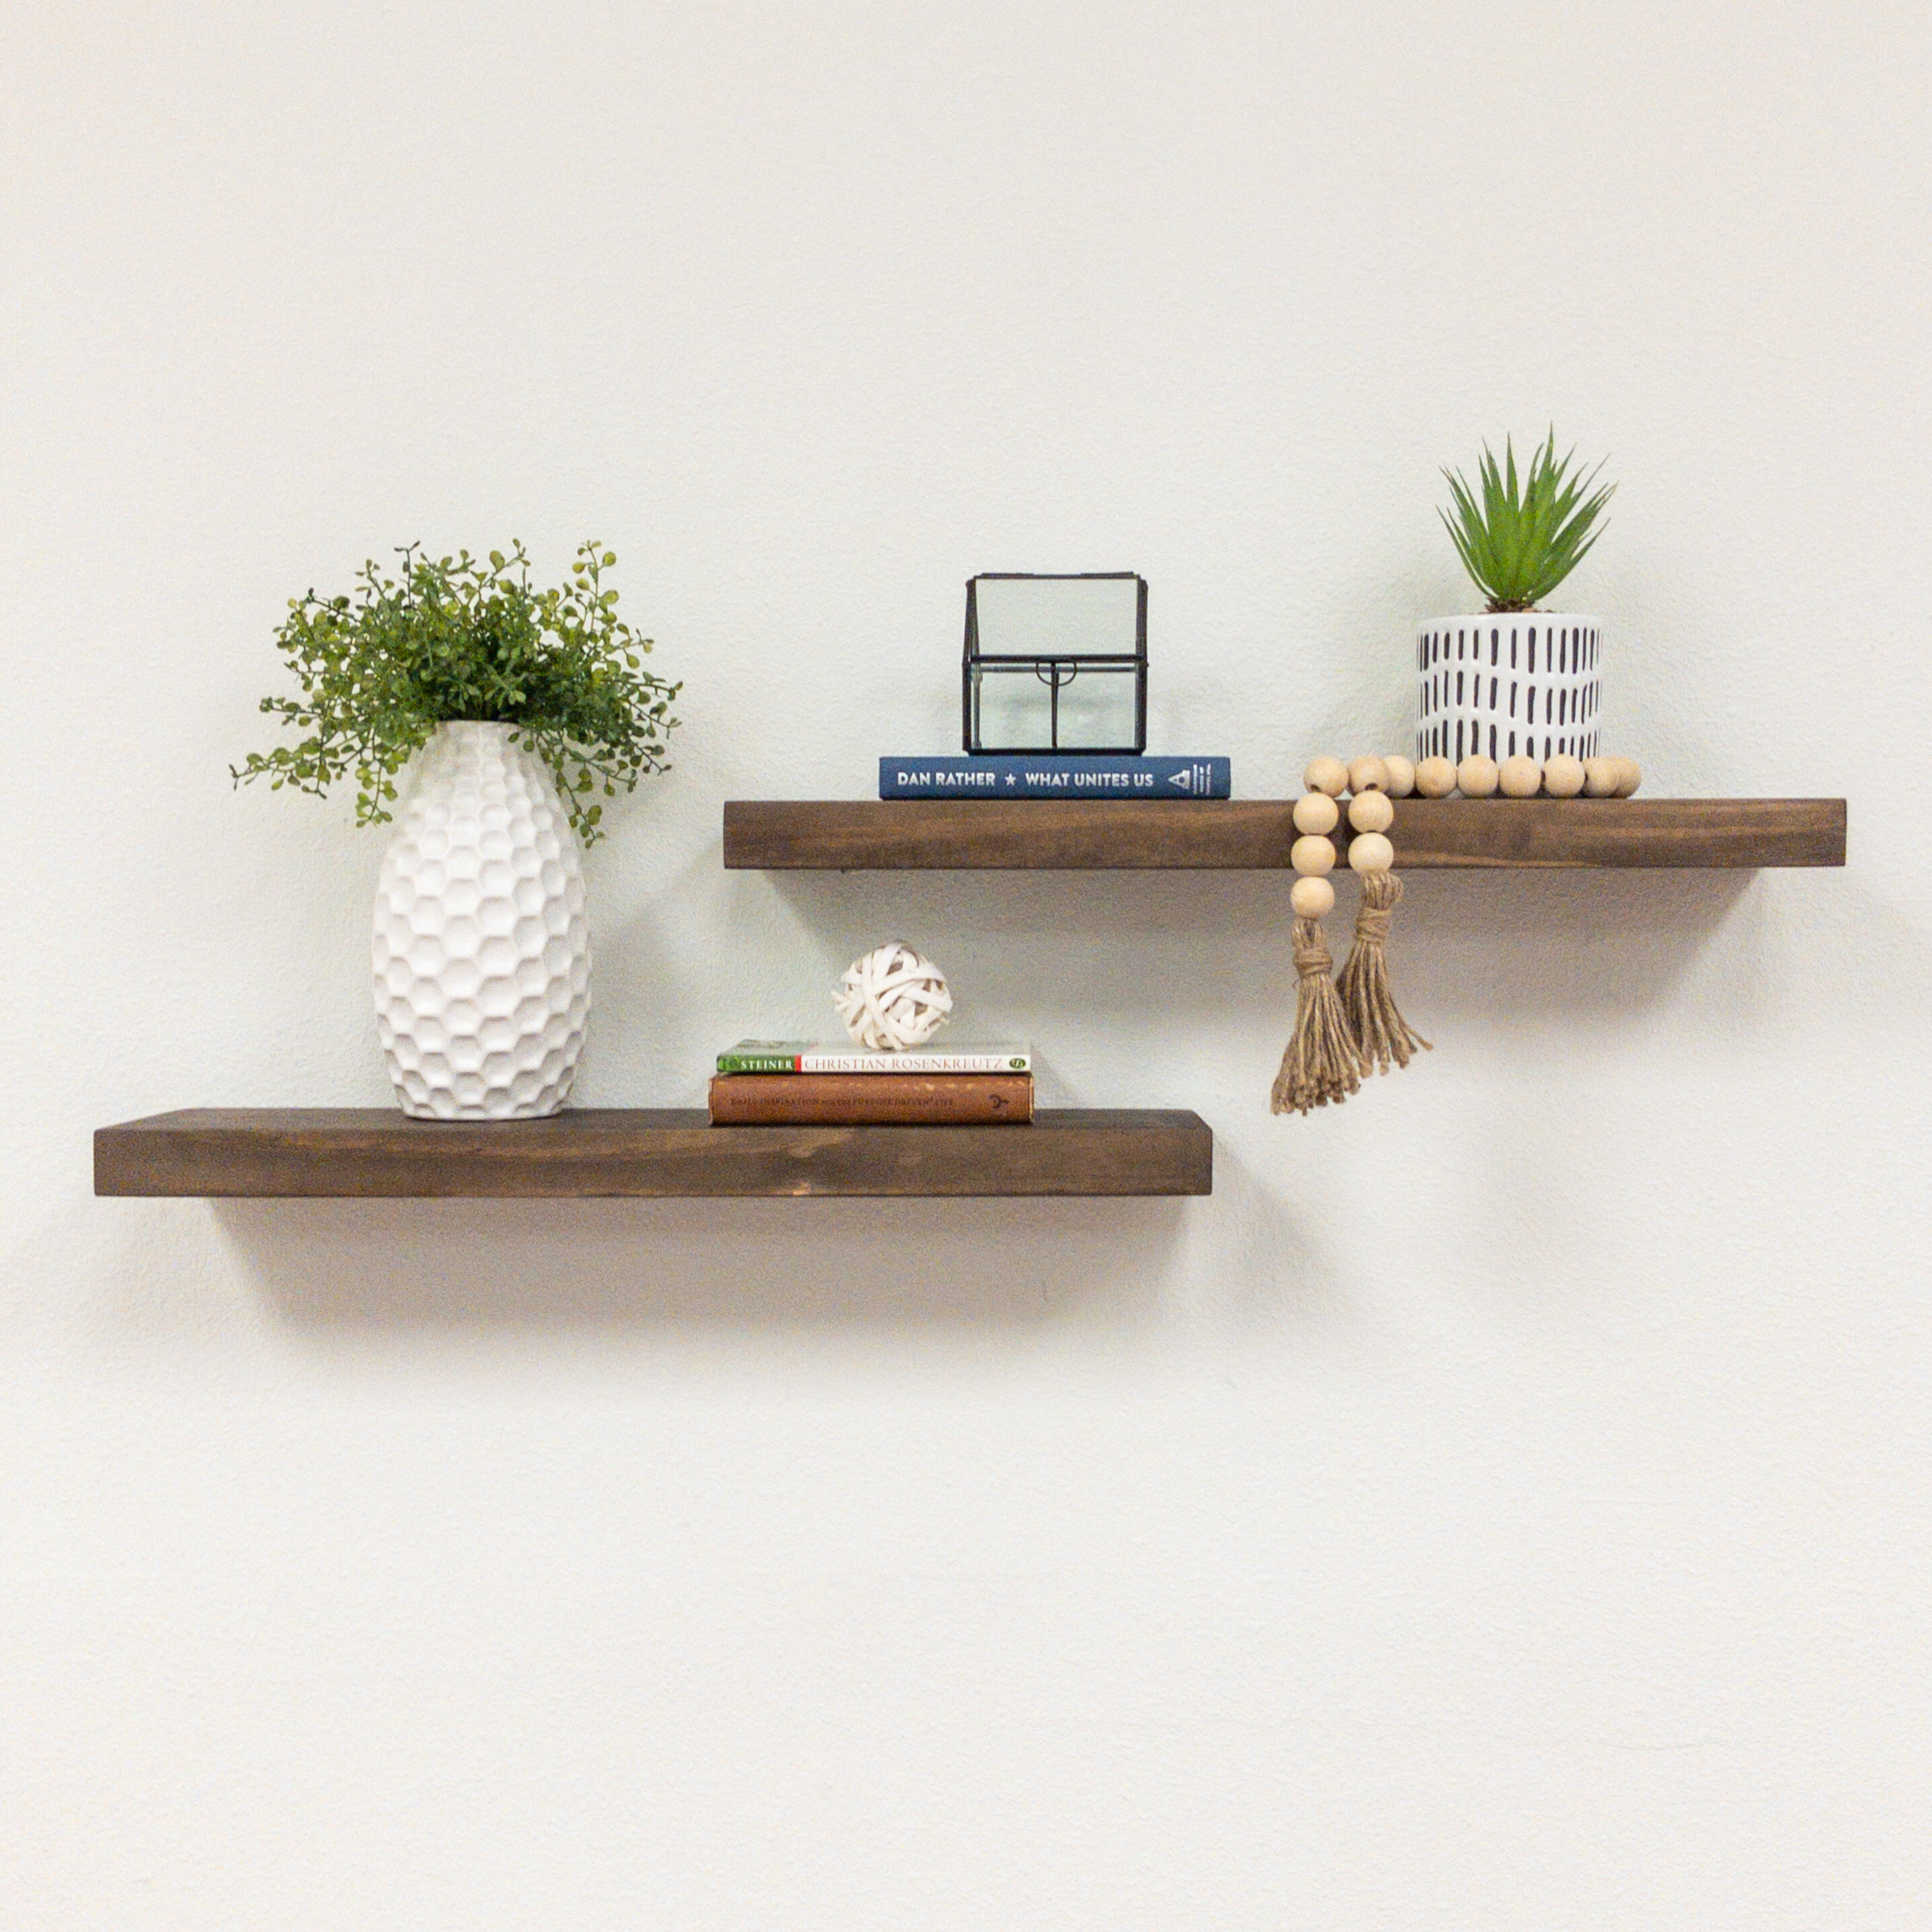 Set of 2 Oil Finish Curved Edge Solid Wood Floating Shelves 12 inches x 6 inches